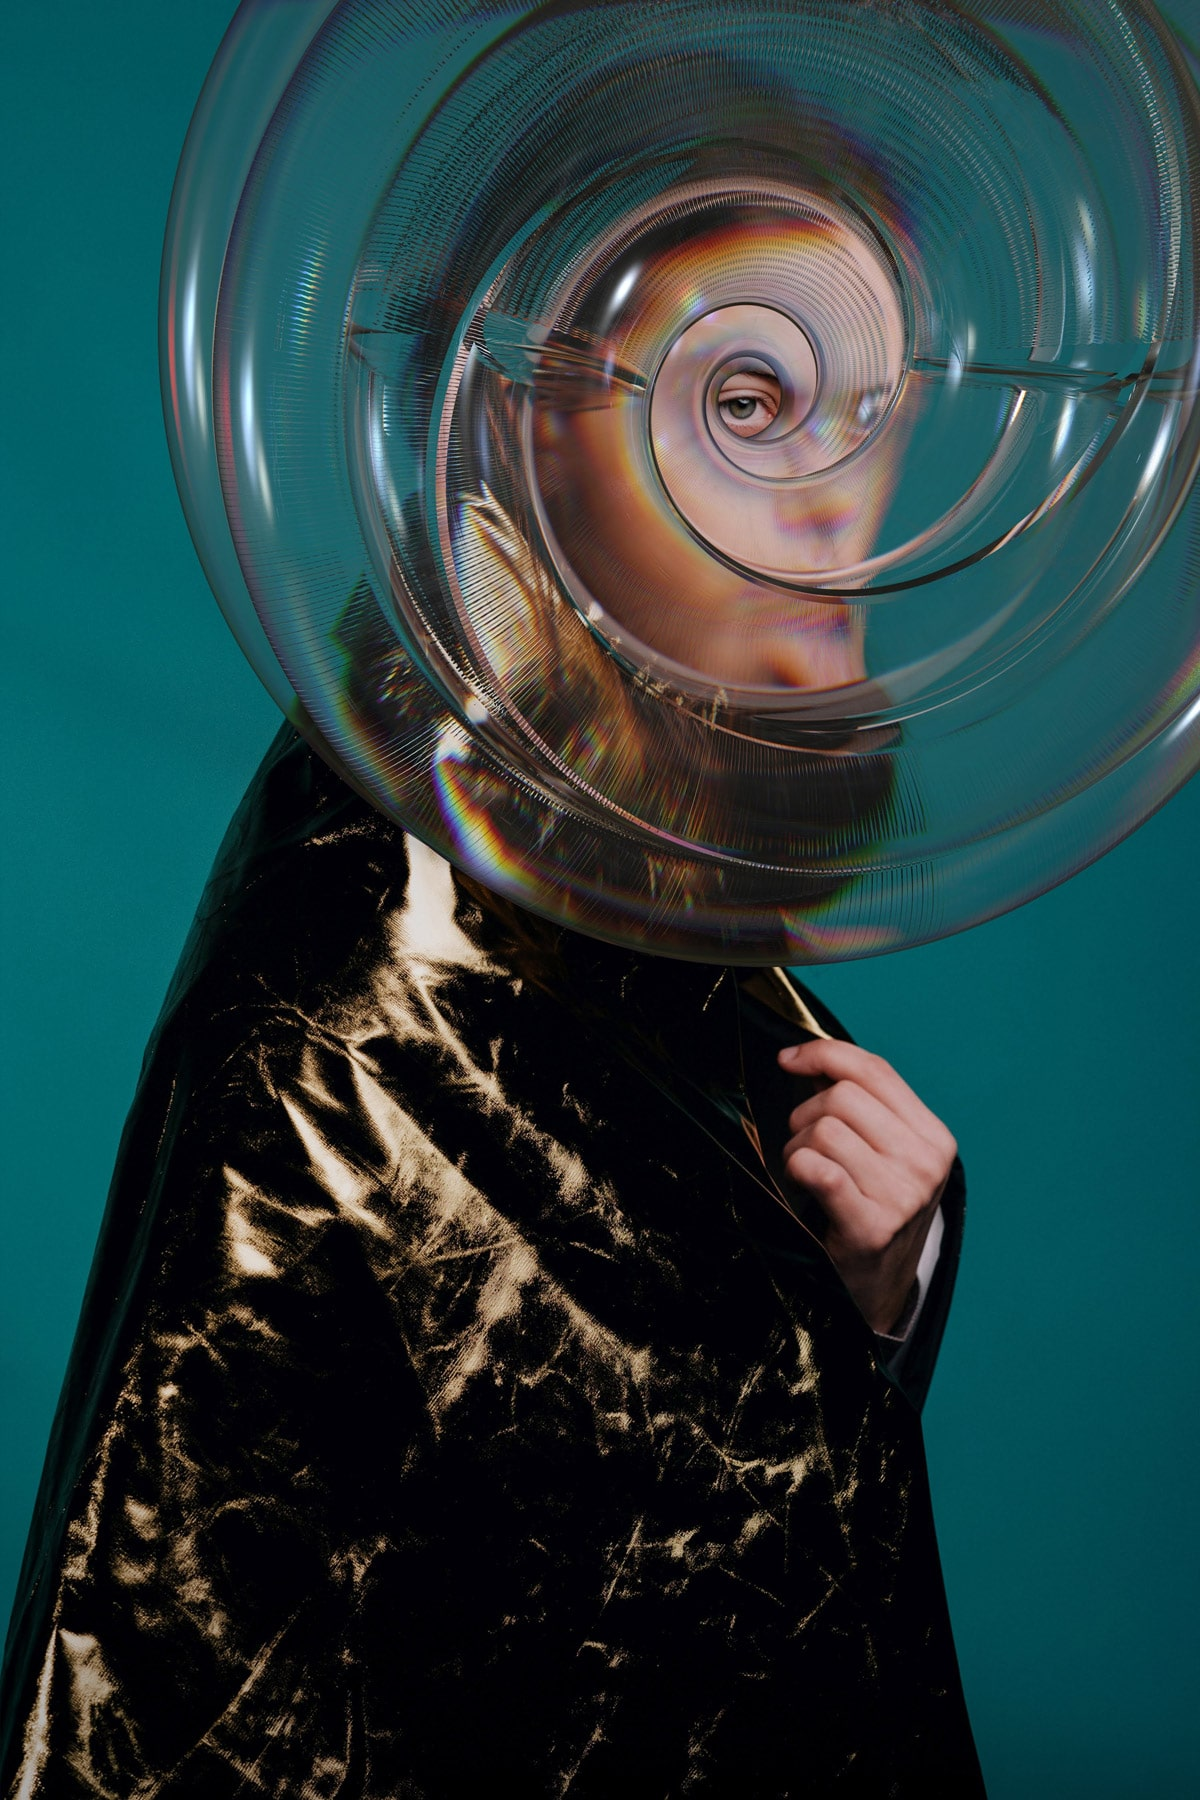 model poses behind bubble illusion